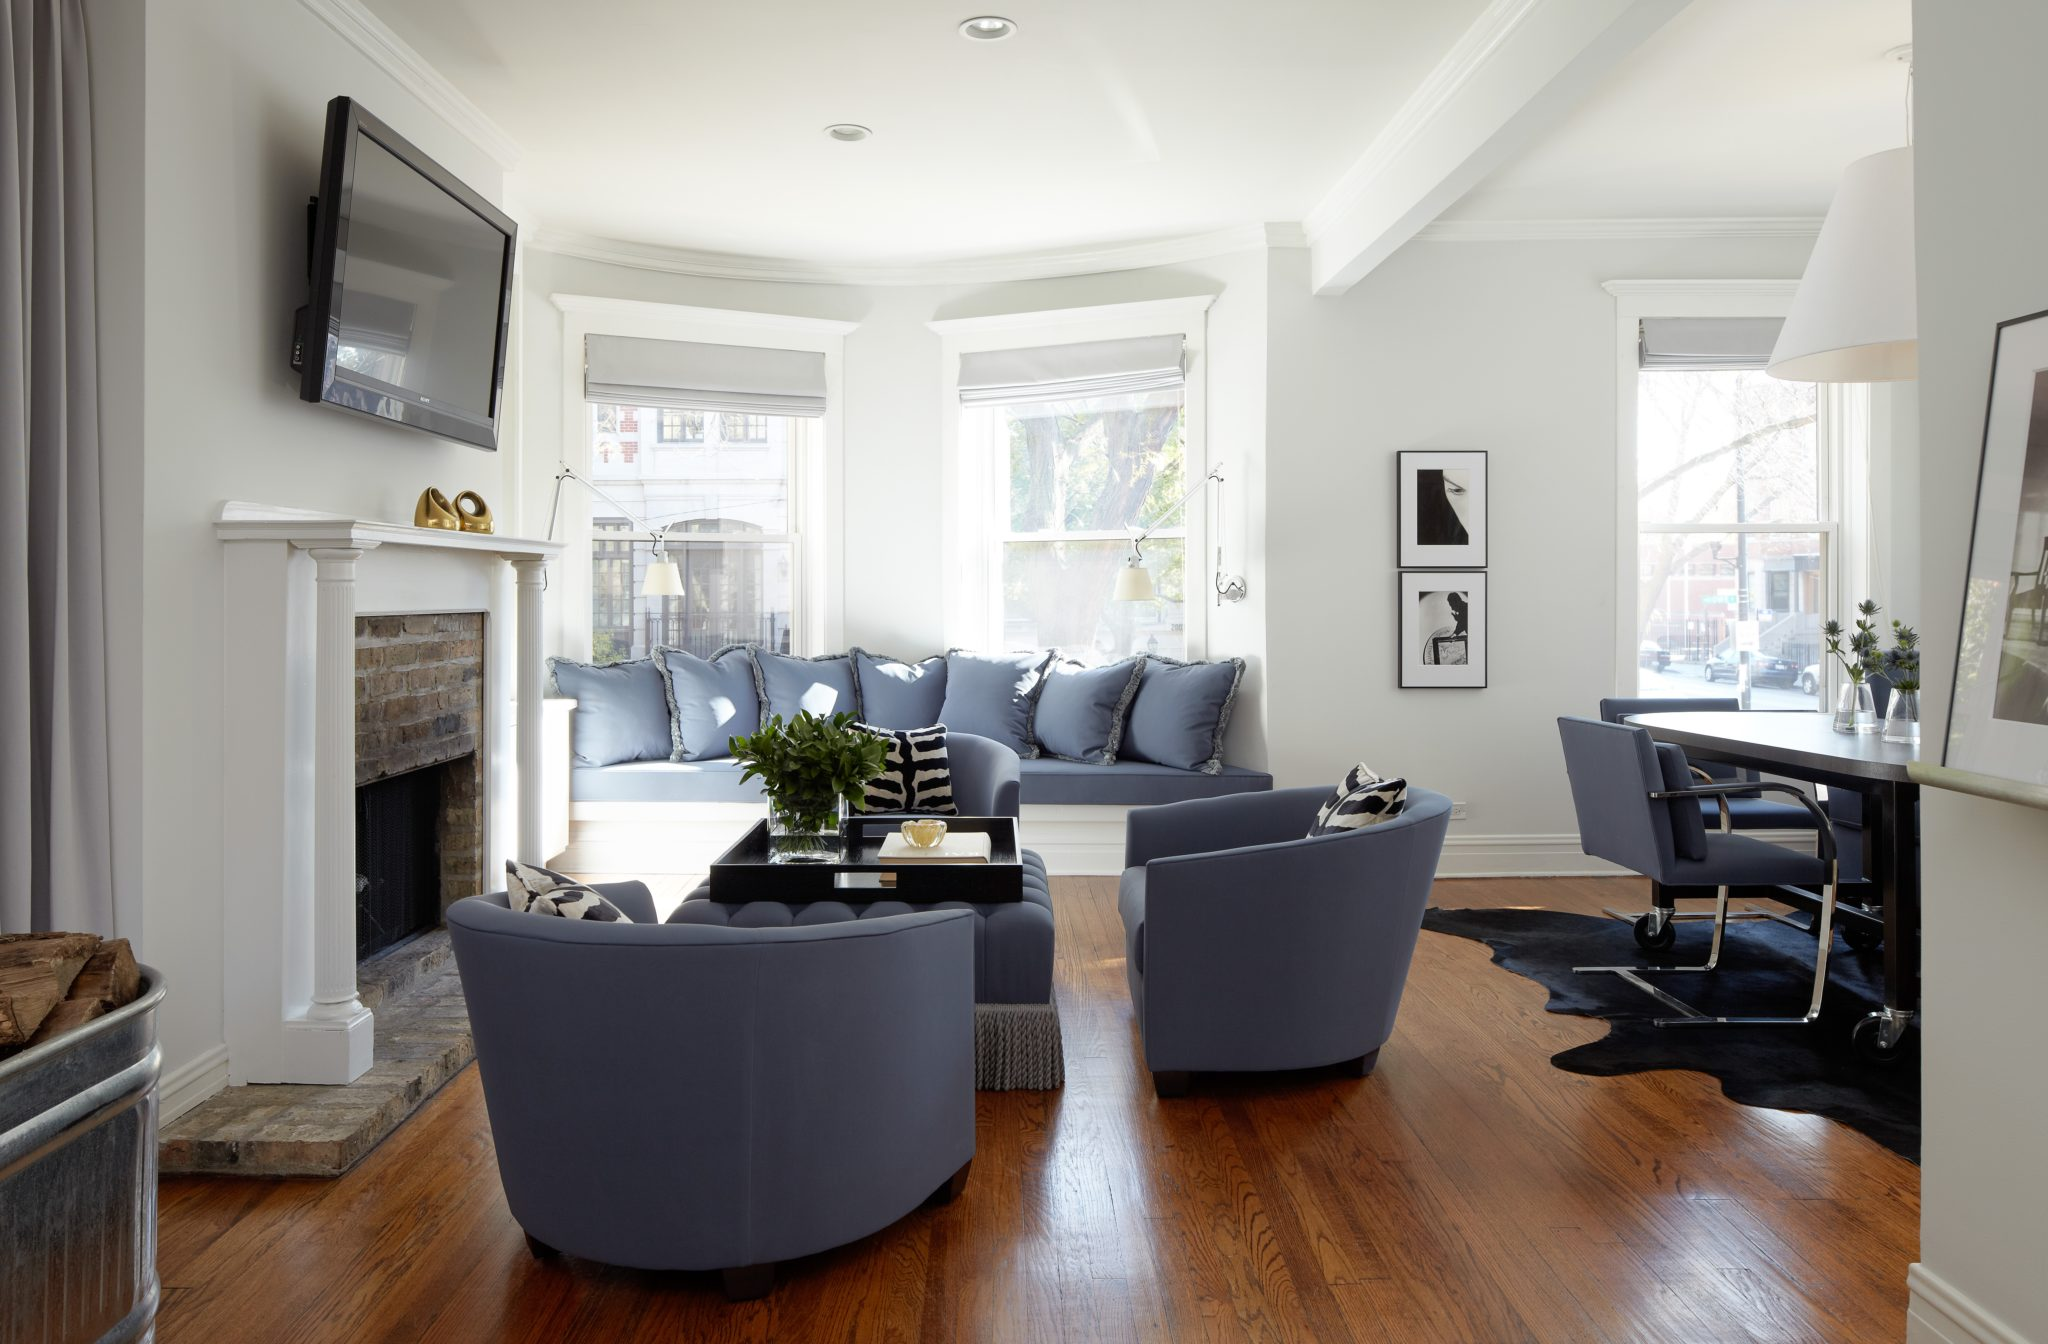 Fresh from a buying trip to Paris, Haley began the design of the apartment with the goal of combining French details and iconic American elements. In the living and dining areas, a pale lavender palette underscores the sense of calm. All of the furniture is upholstered in the same Knoll fabric.